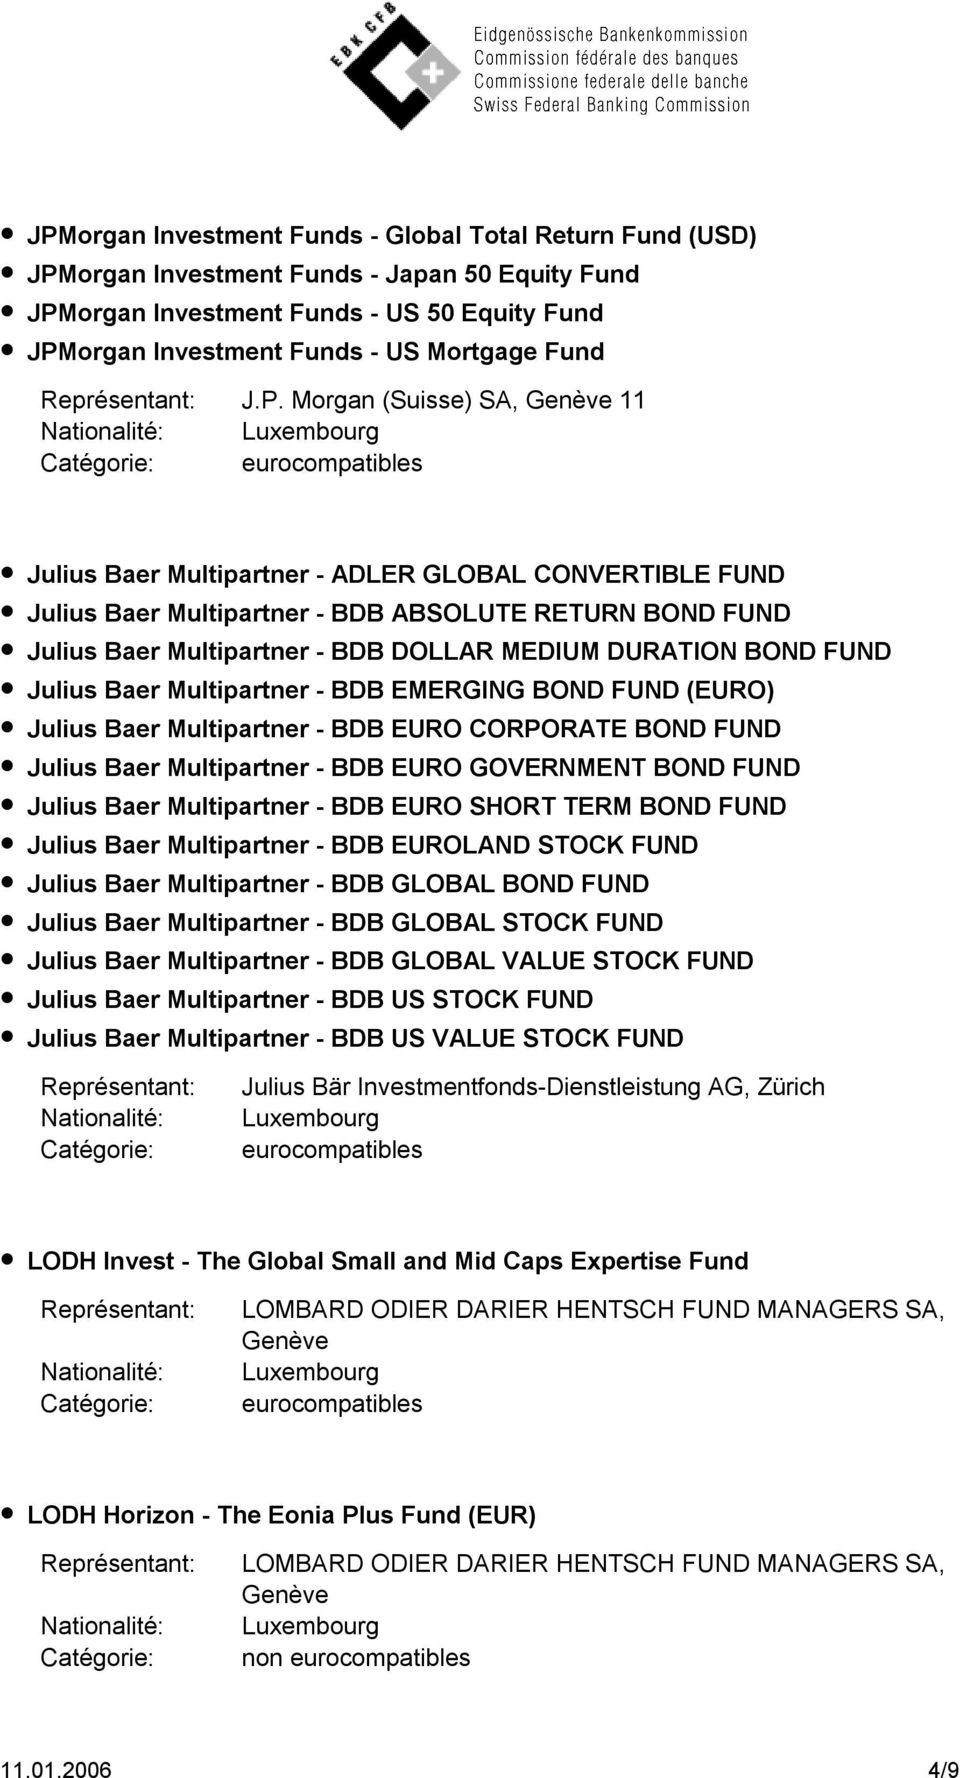 DURATION BOND FUND Julius Baer Multipartner - BDB EMERGING BOND FUND (EURO) Julius Baer Multipartner - BDB EURO CORPORATE BOND FUND Julius Baer Multipartner - BDB EURO GOVERNMENT BOND FUND Julius